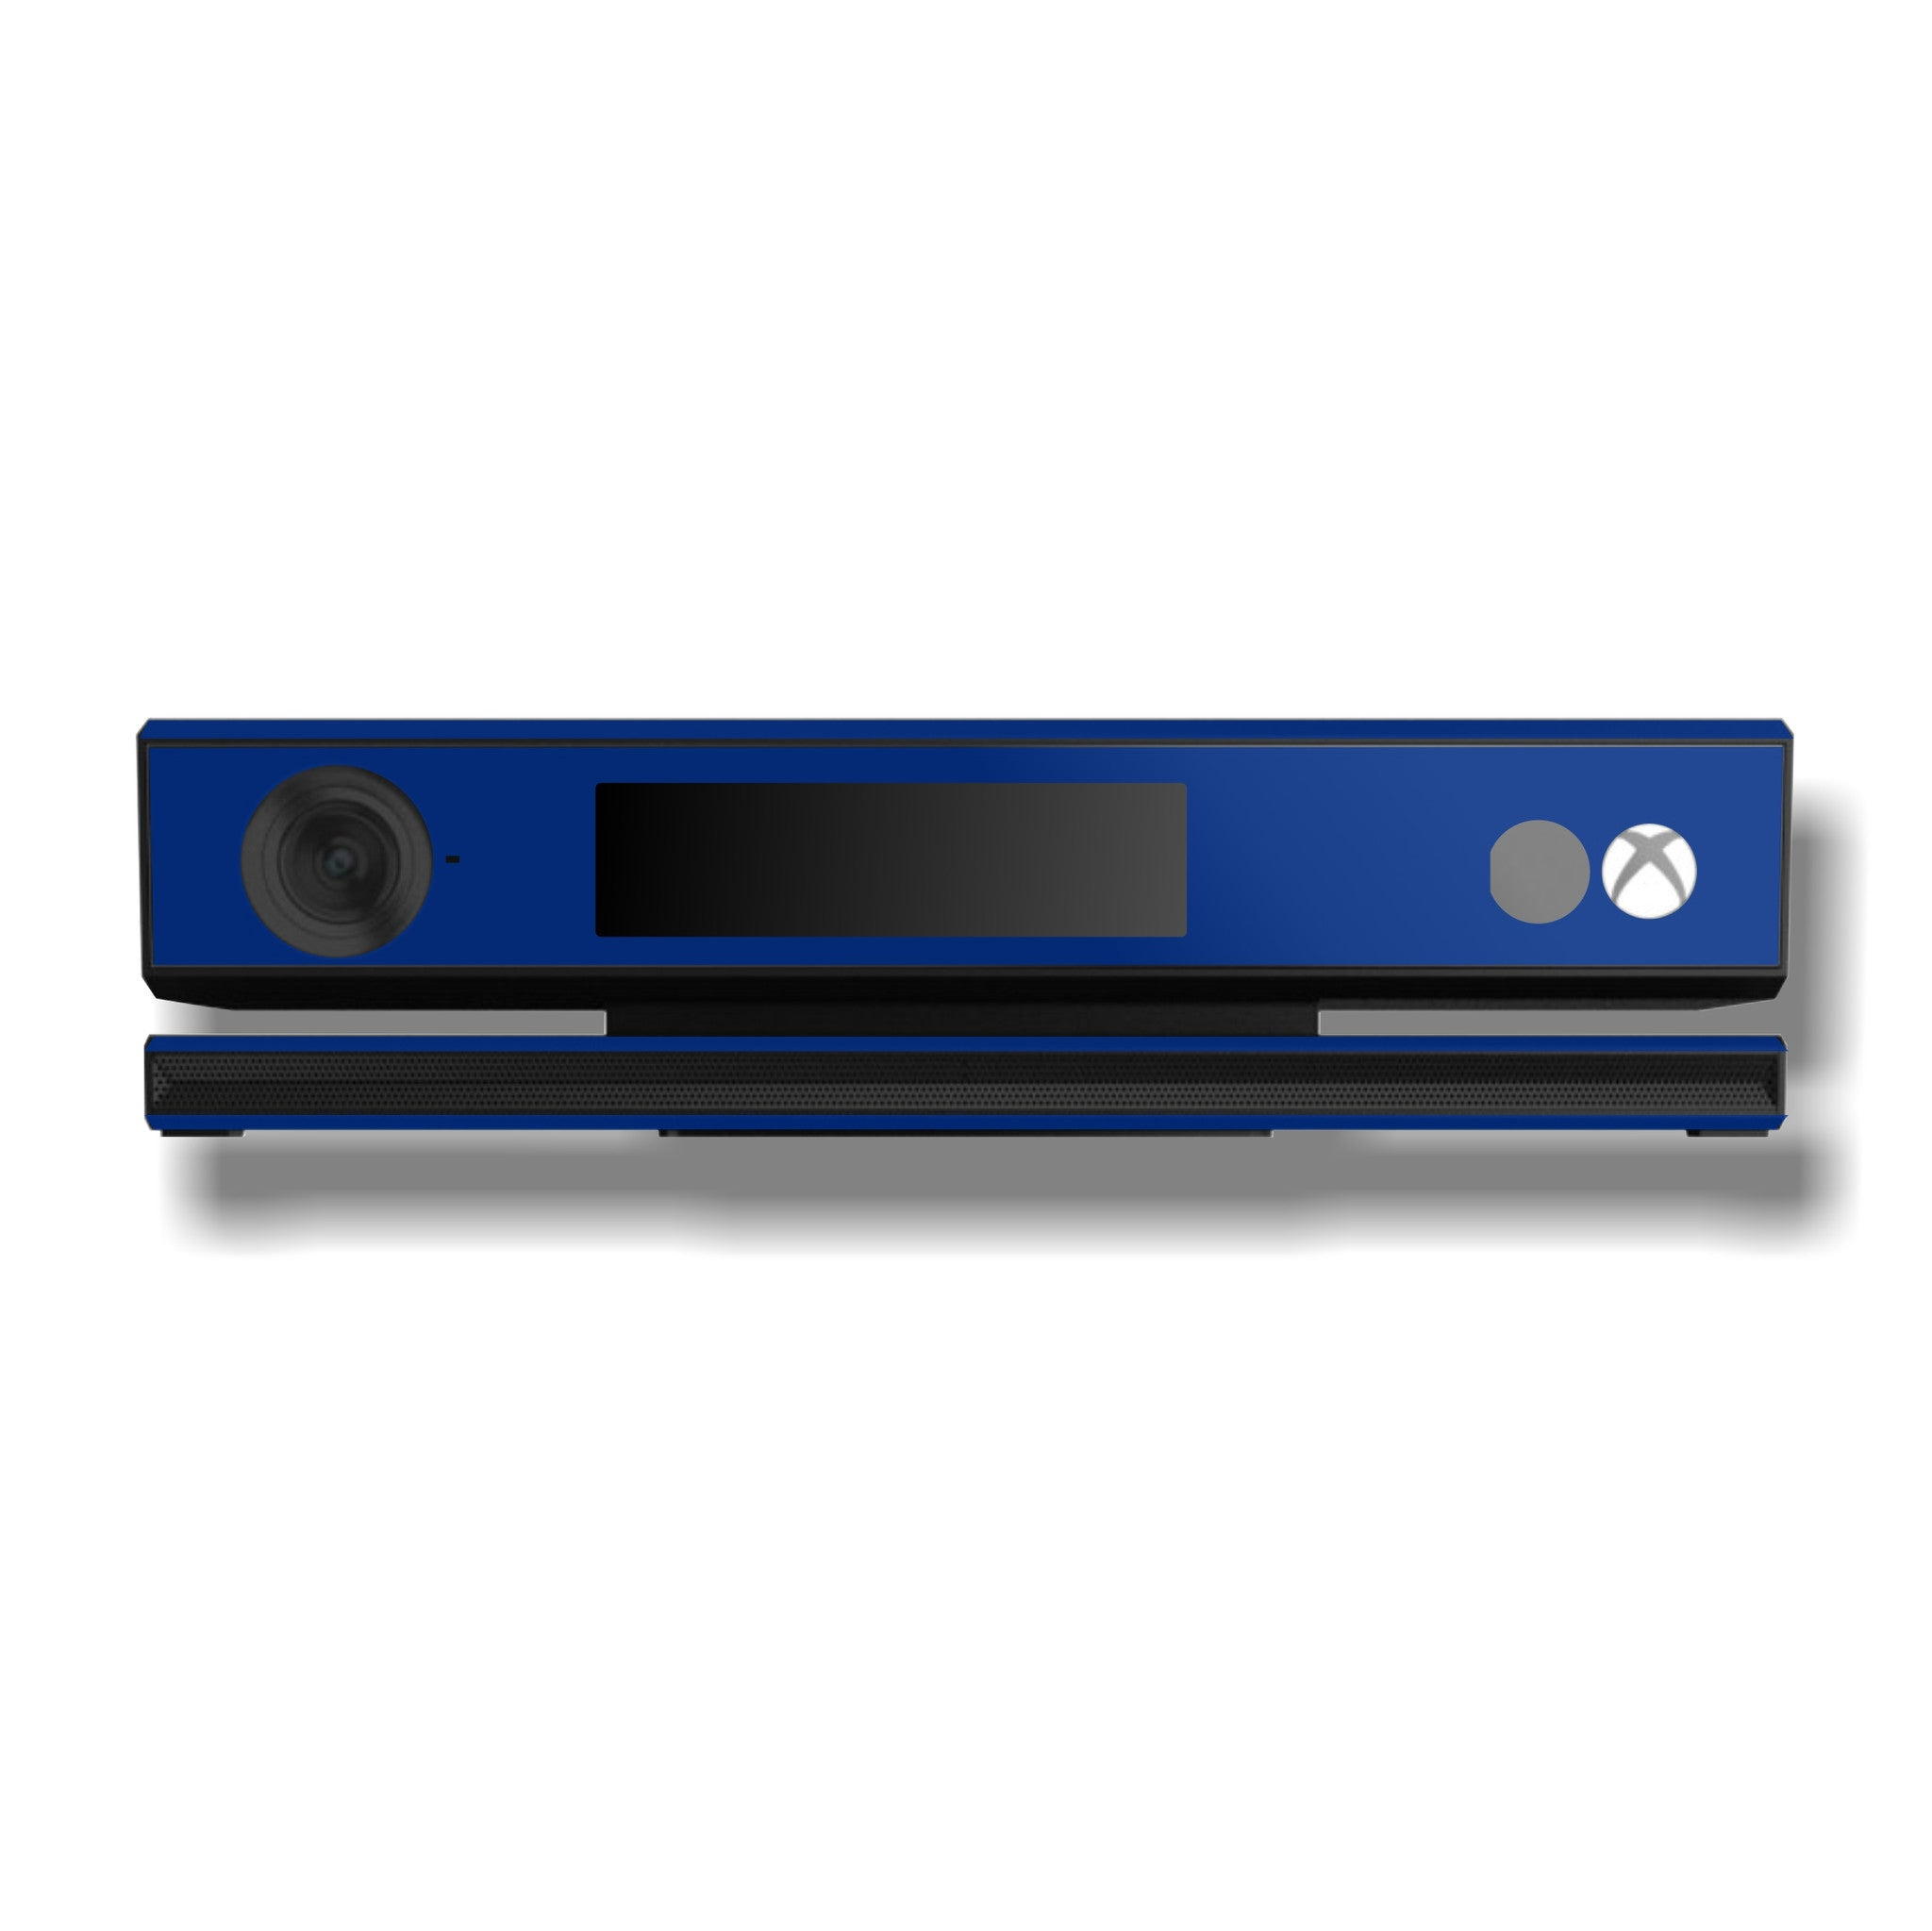 Xbox One Kinect Royal Blue GLOSSY Finish Skin Wrap Sticker Decal Protector Cover by EasySkinz